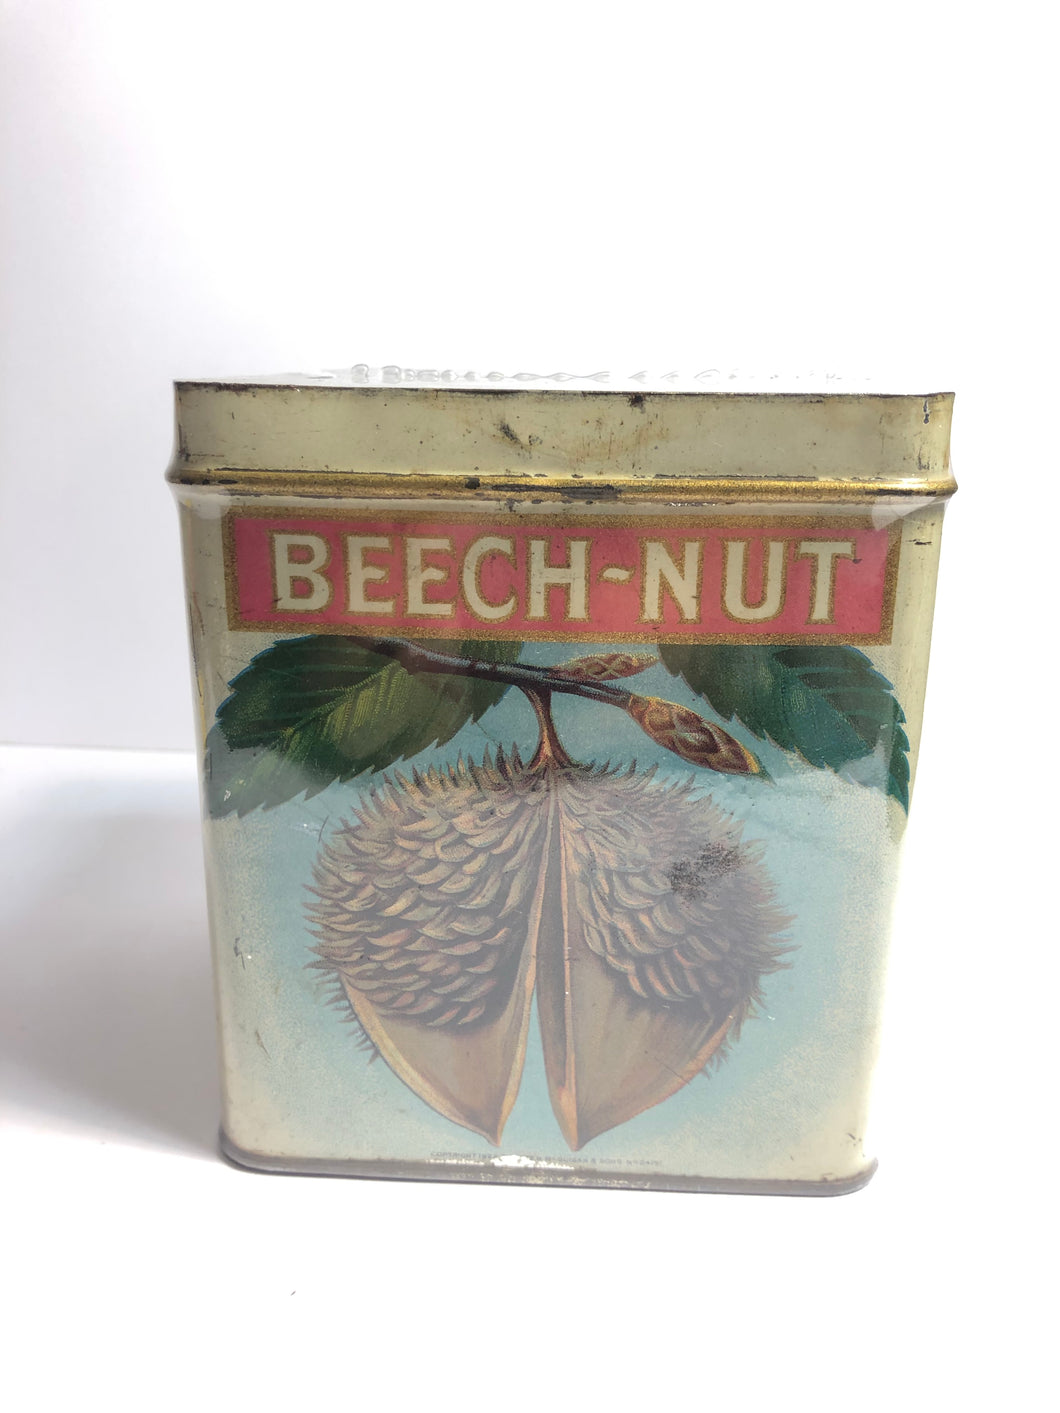 Monarch Beech-Nut tobacco tin from the front